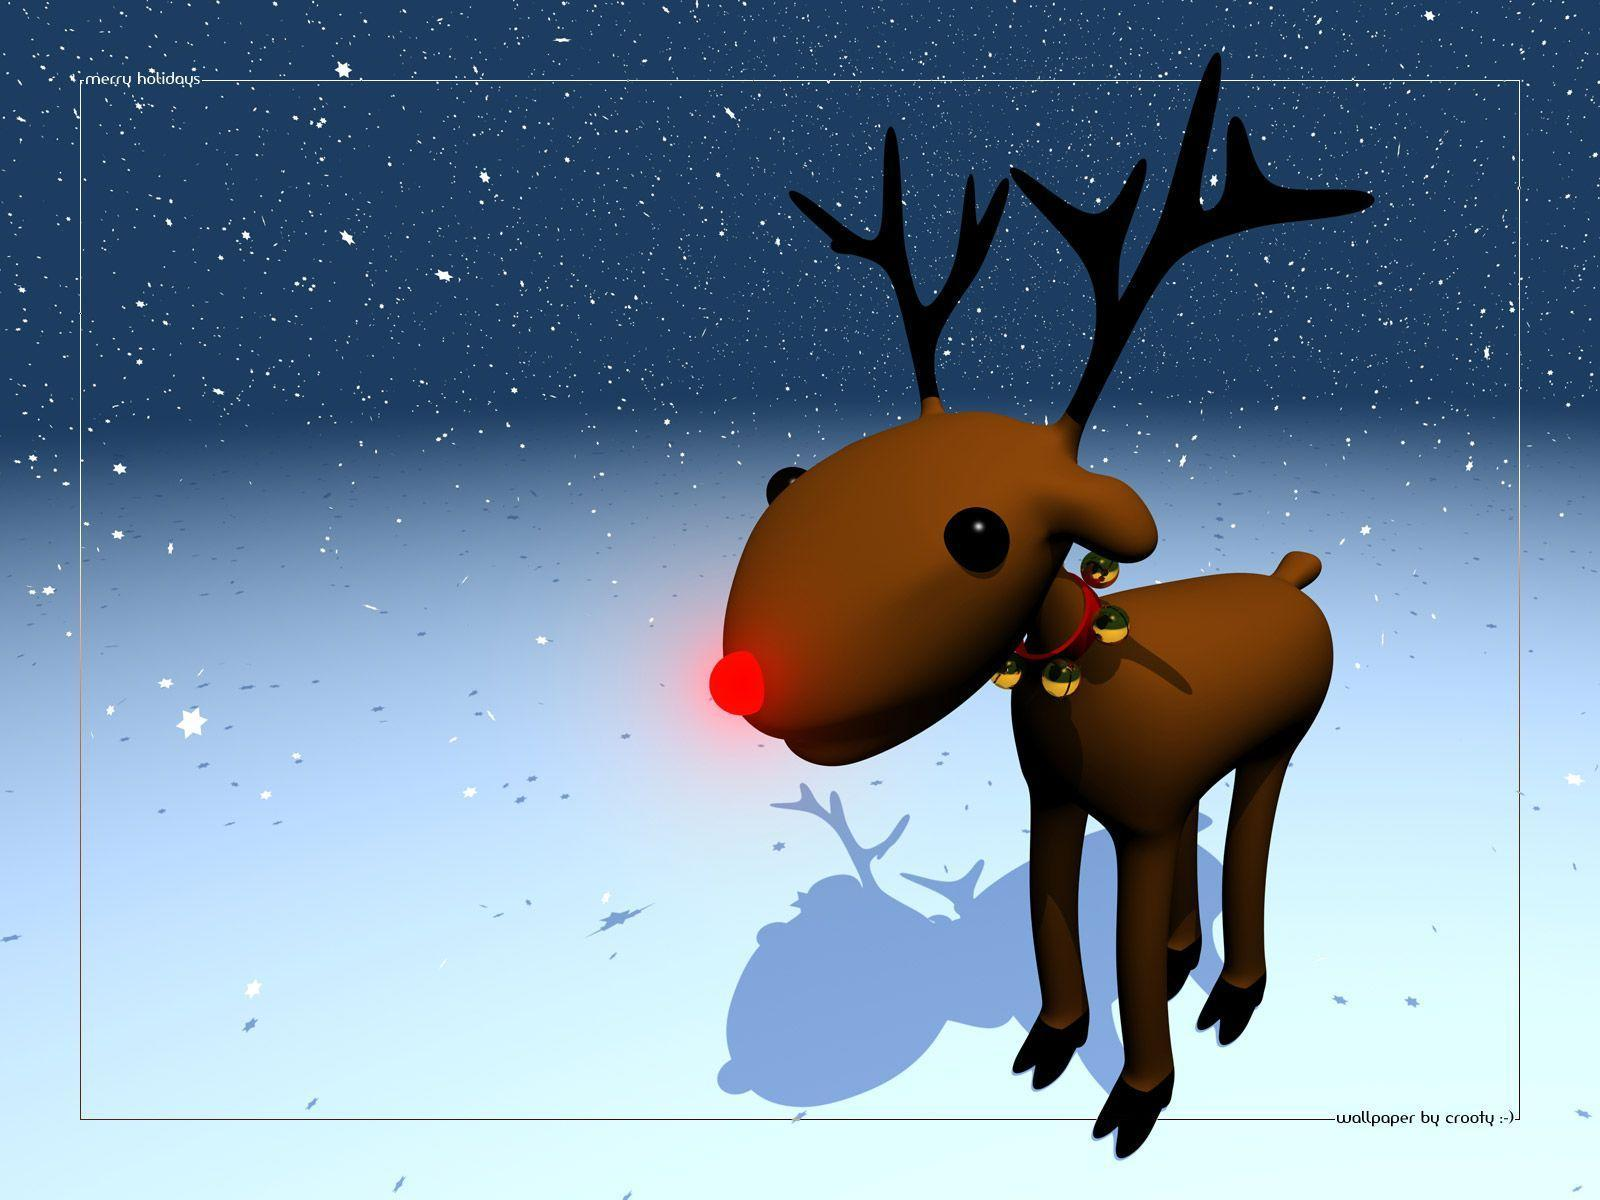 Wallpapers For > Rudolph The Red Nosed Reindeer Iphone Wallpaper